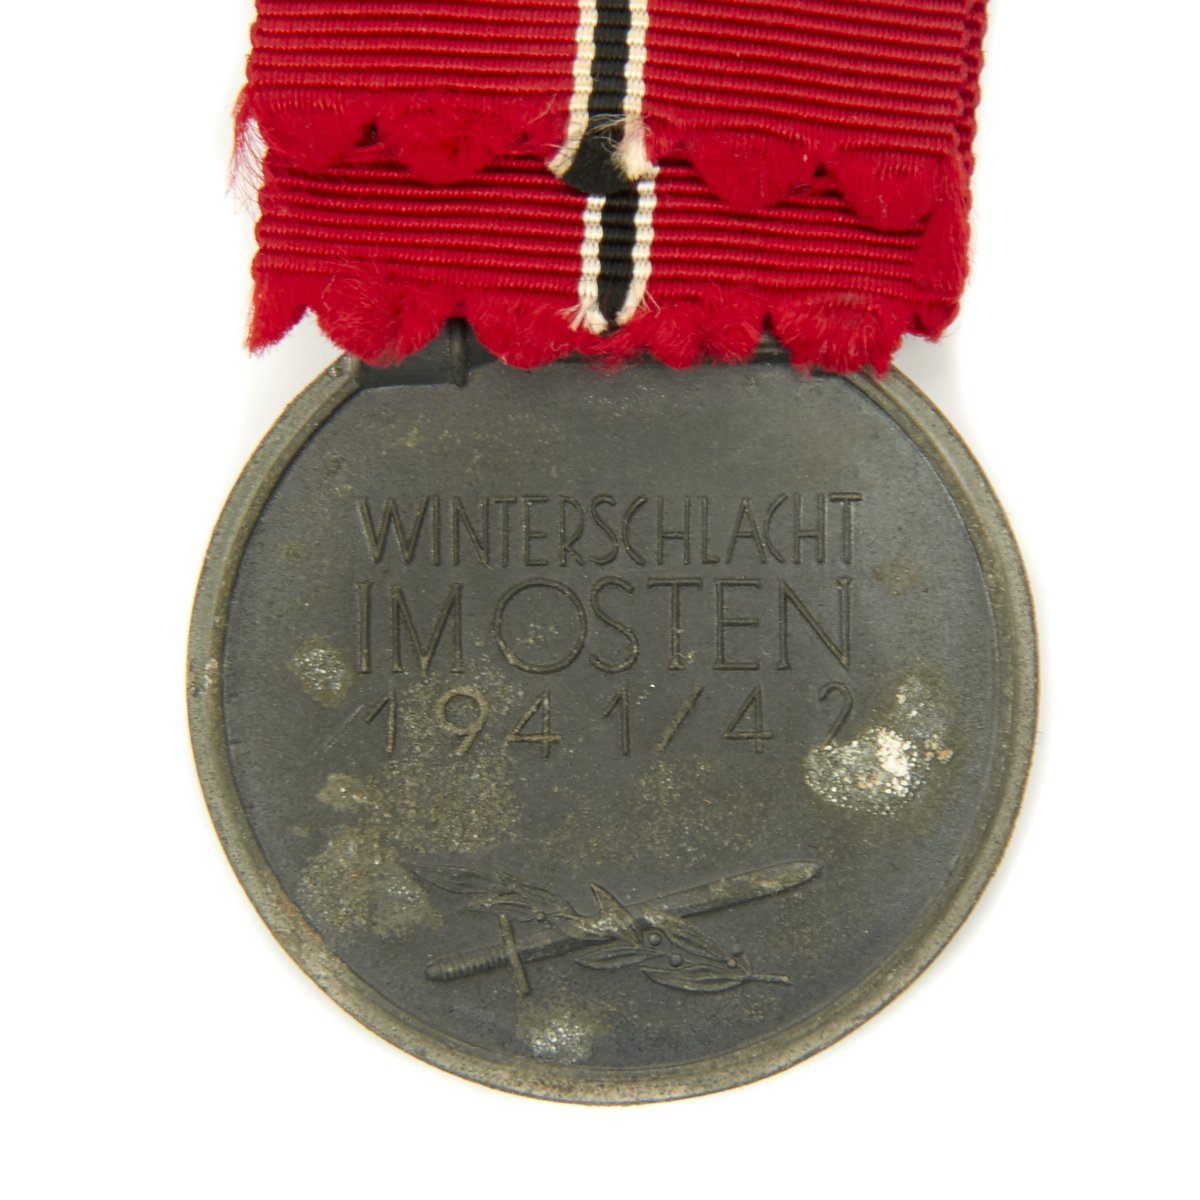 Original German WWII Eastern Front Medal by Forster & Barth